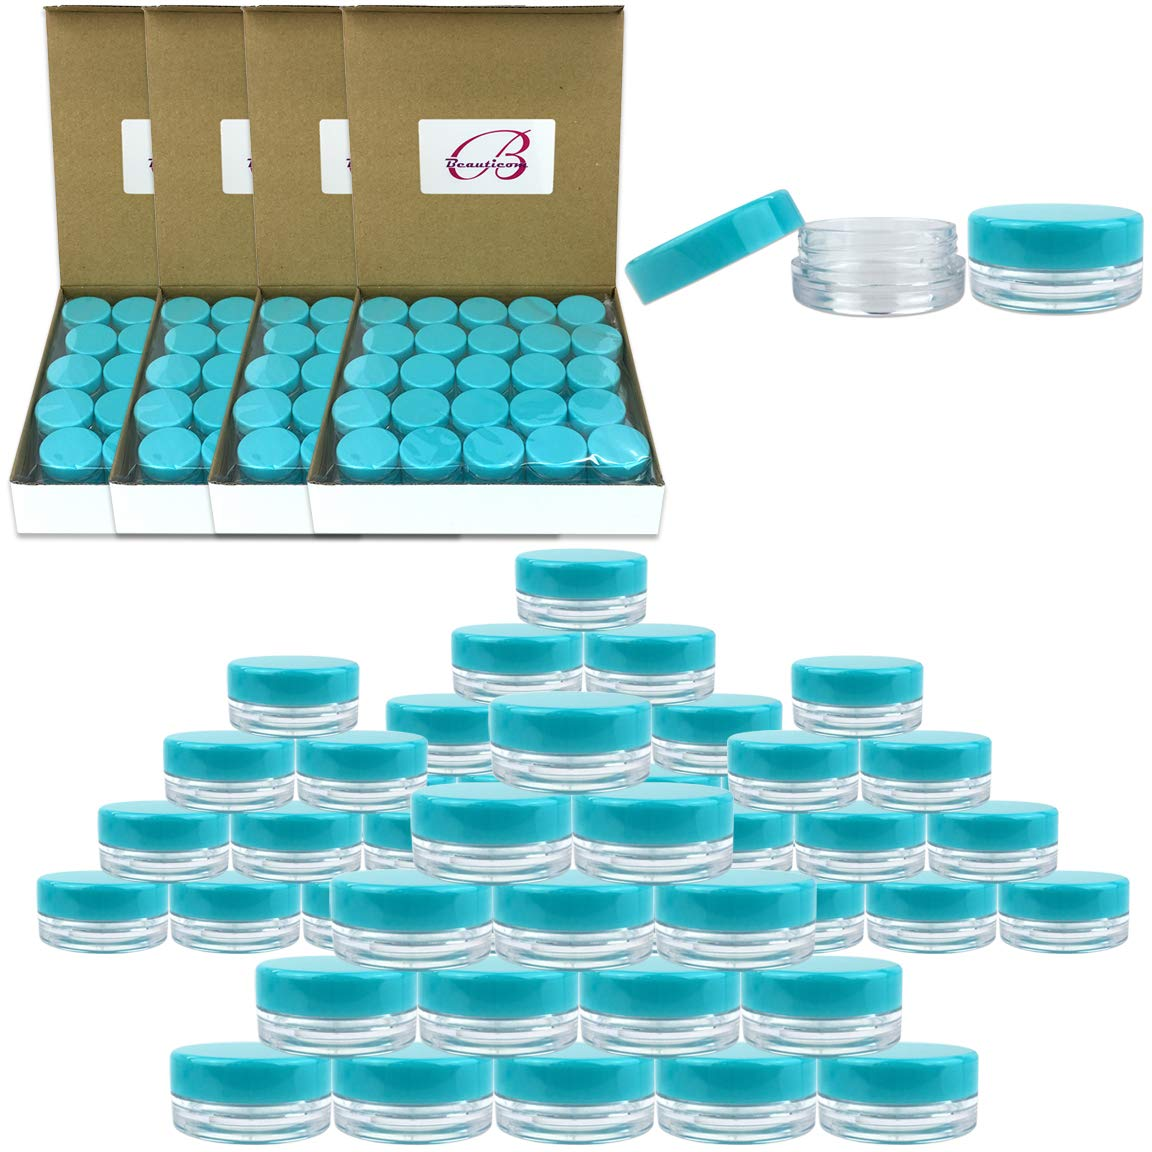 (Quantity: 500 Pieces) Beauticom 3G/3ML Round Clear Jars with TEAL Sky Blue Lids for Scrubs, Oils, Toner, Salves, Creams, Lotions, Makeup Samples, Lip Balms - BPA Free by Beauticom